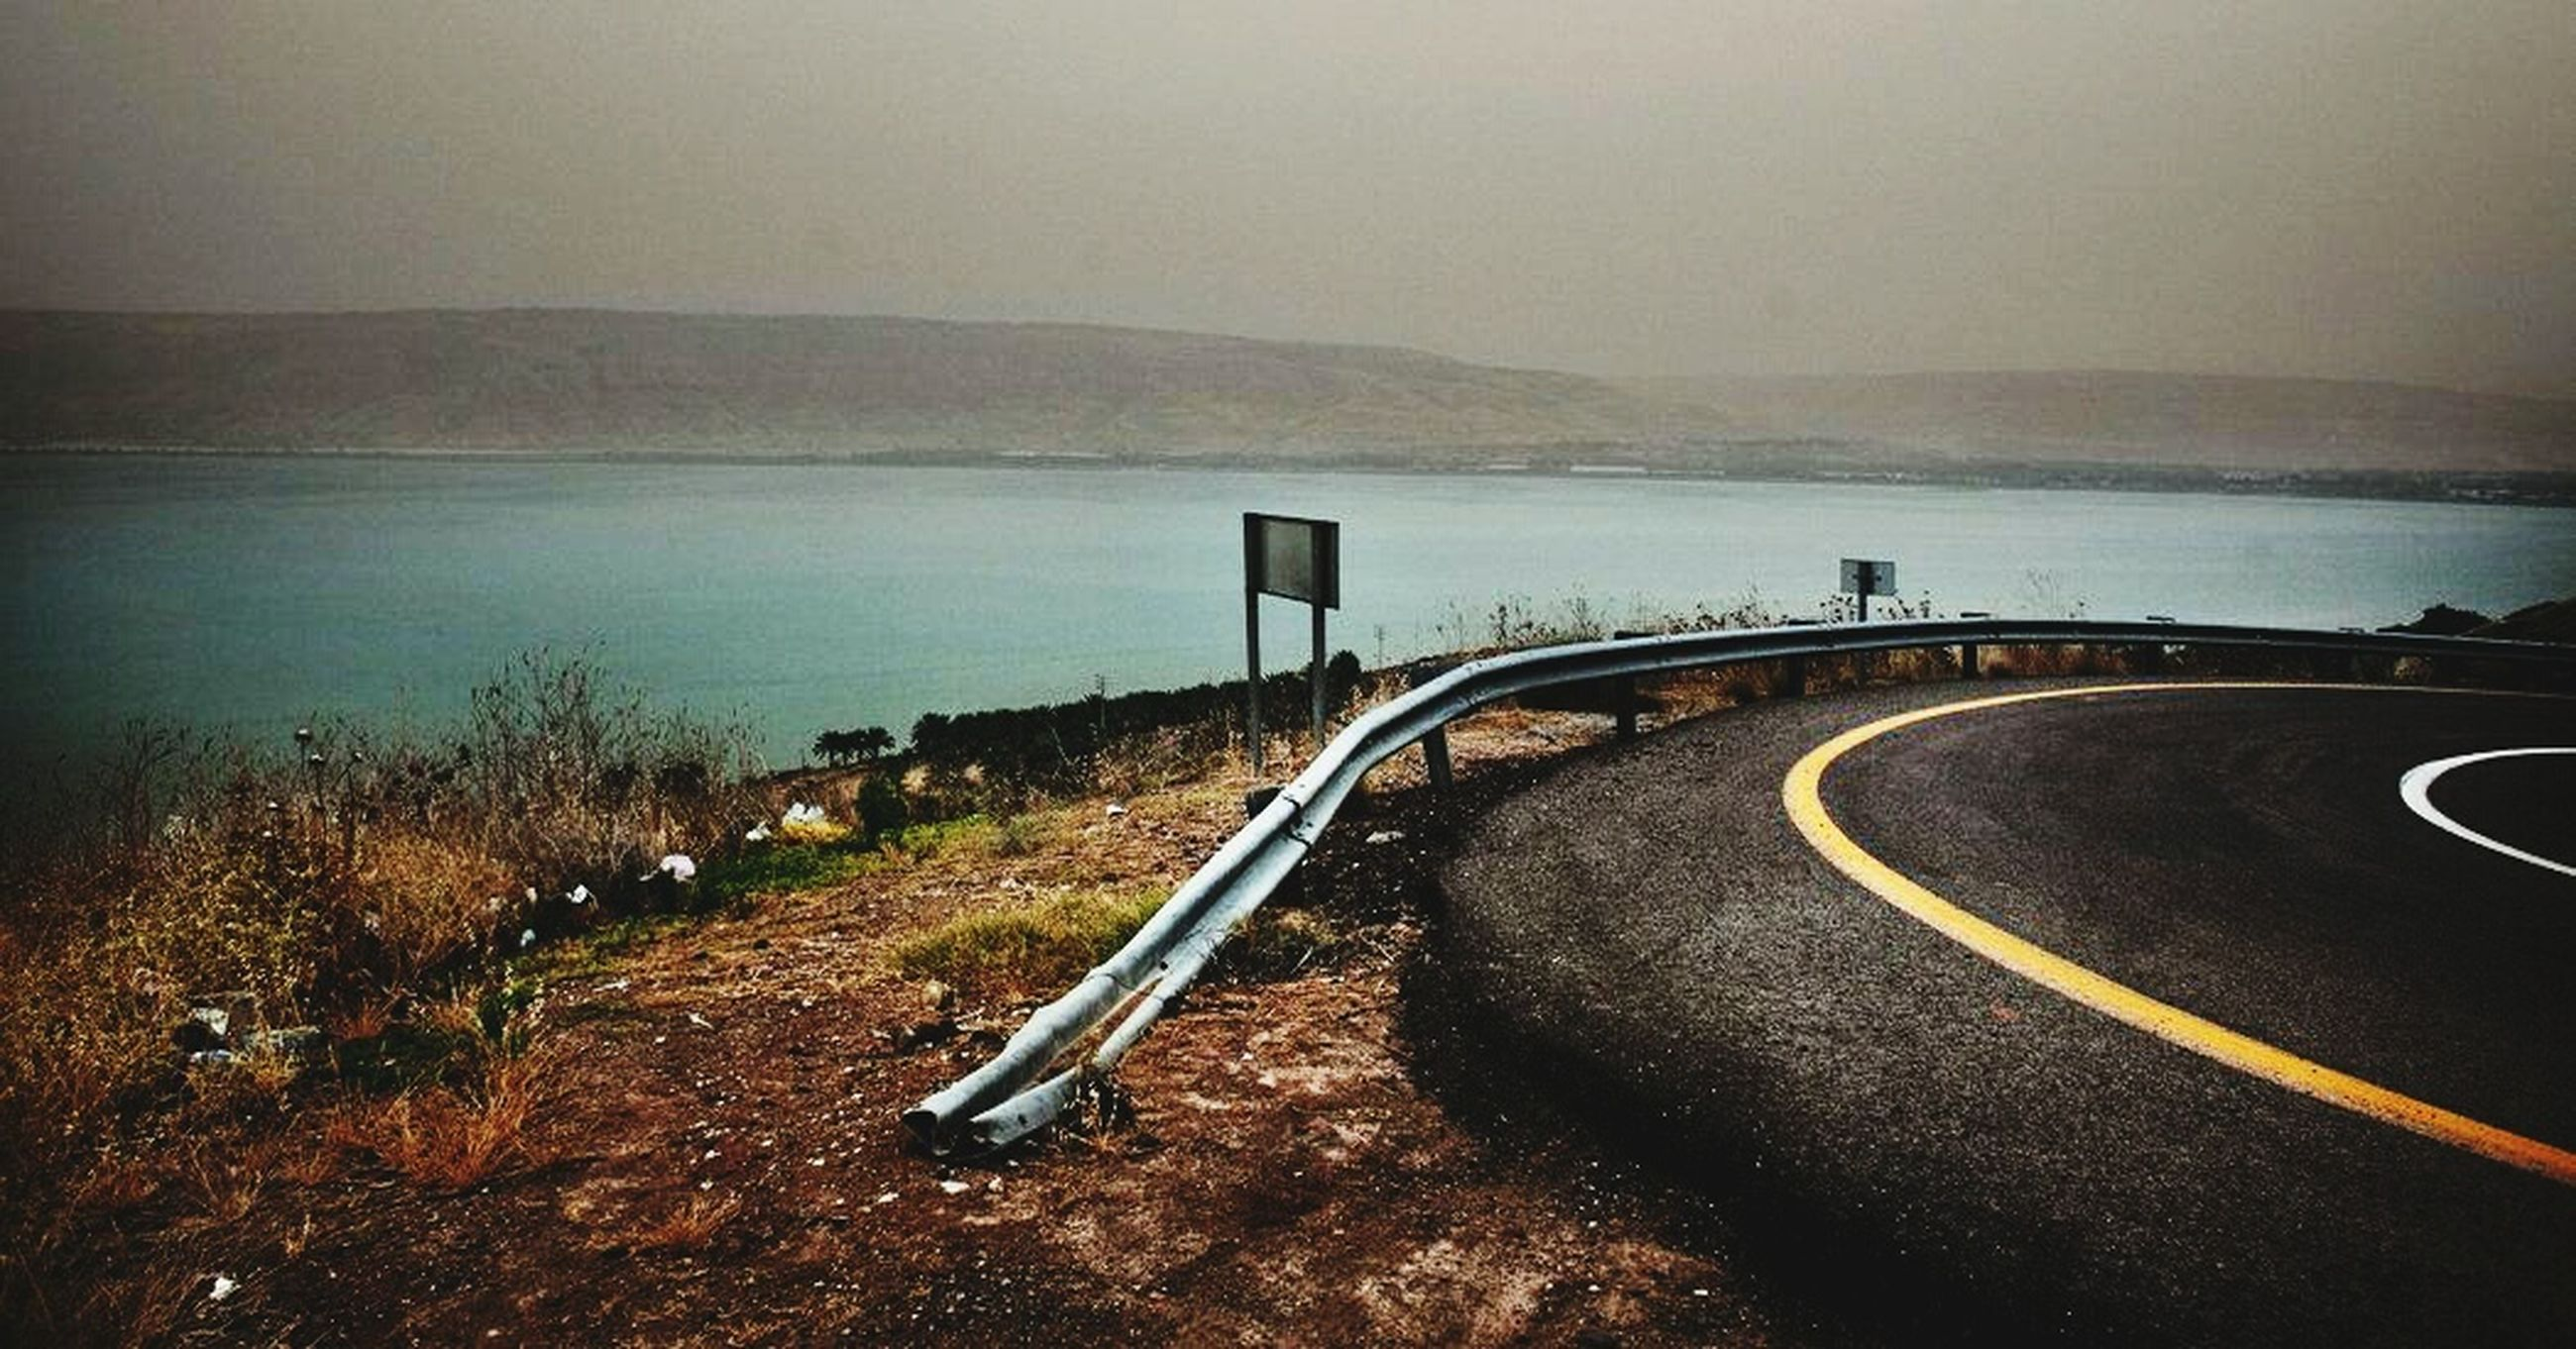 transportation, road, scenics, sky, the way forward, tranquility, nature, water, no people, day, outdoors, beauty in nature